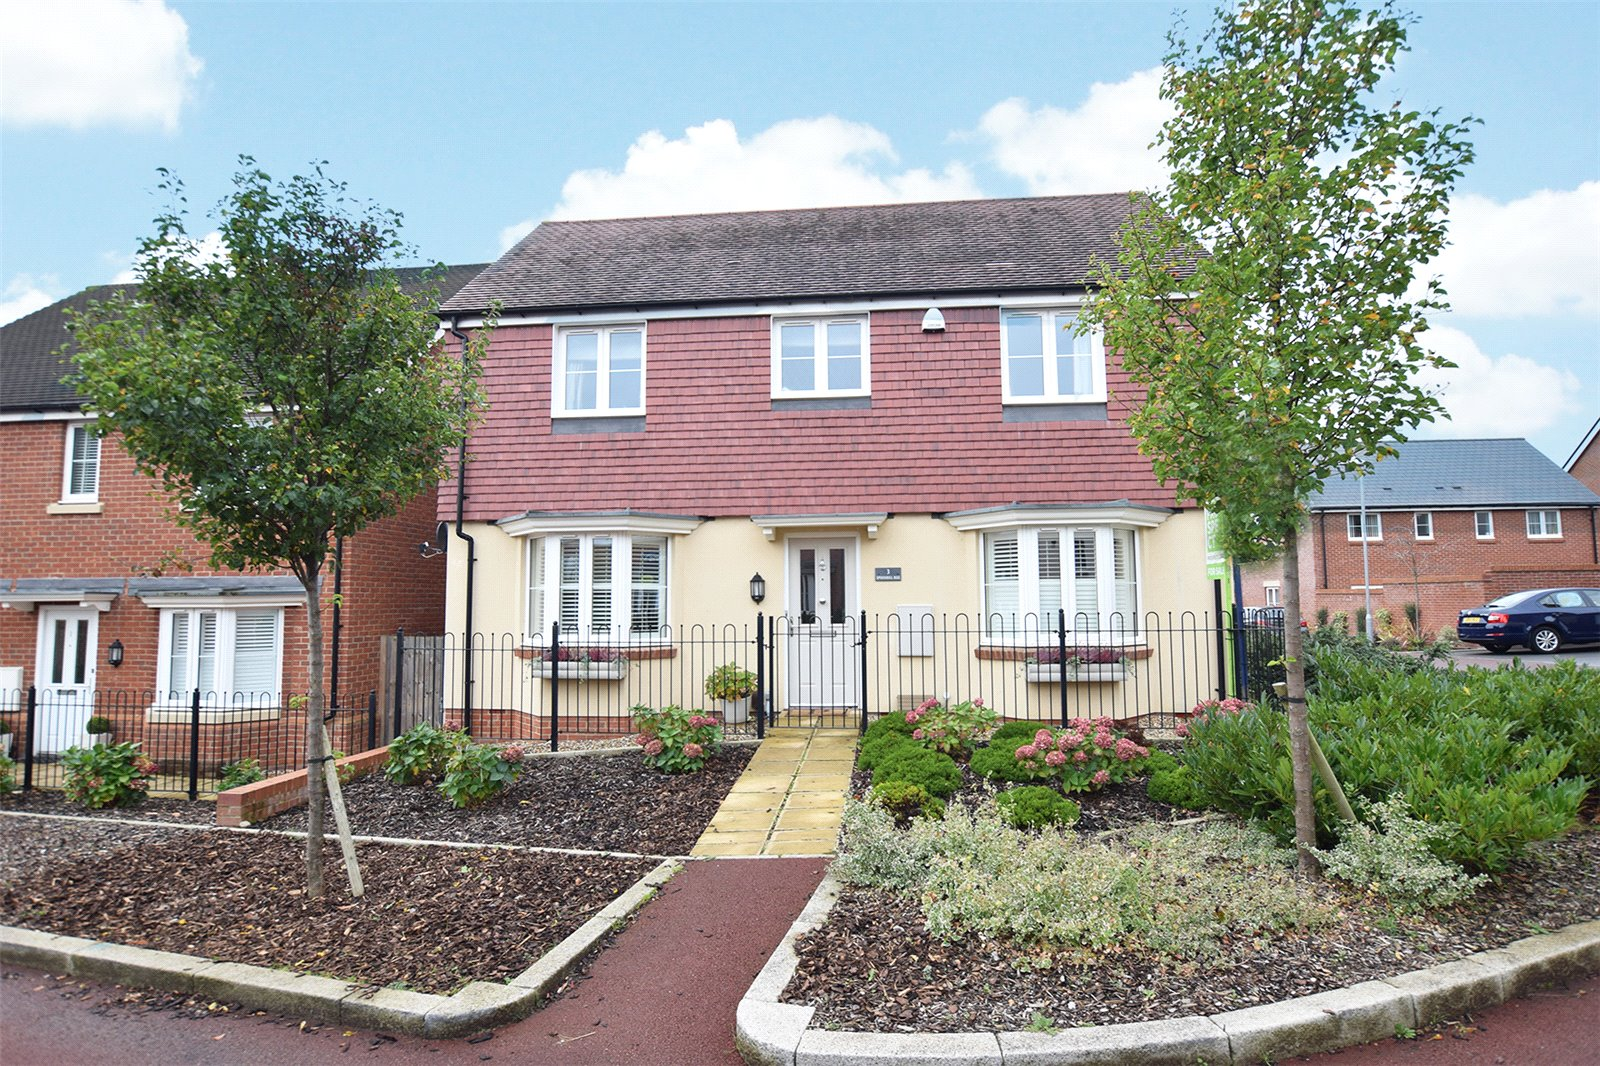 4 Bedrooms Detached House for sale in Spoonbill Rise, Jennett's Park, Bracknell, Berkshire, RG12